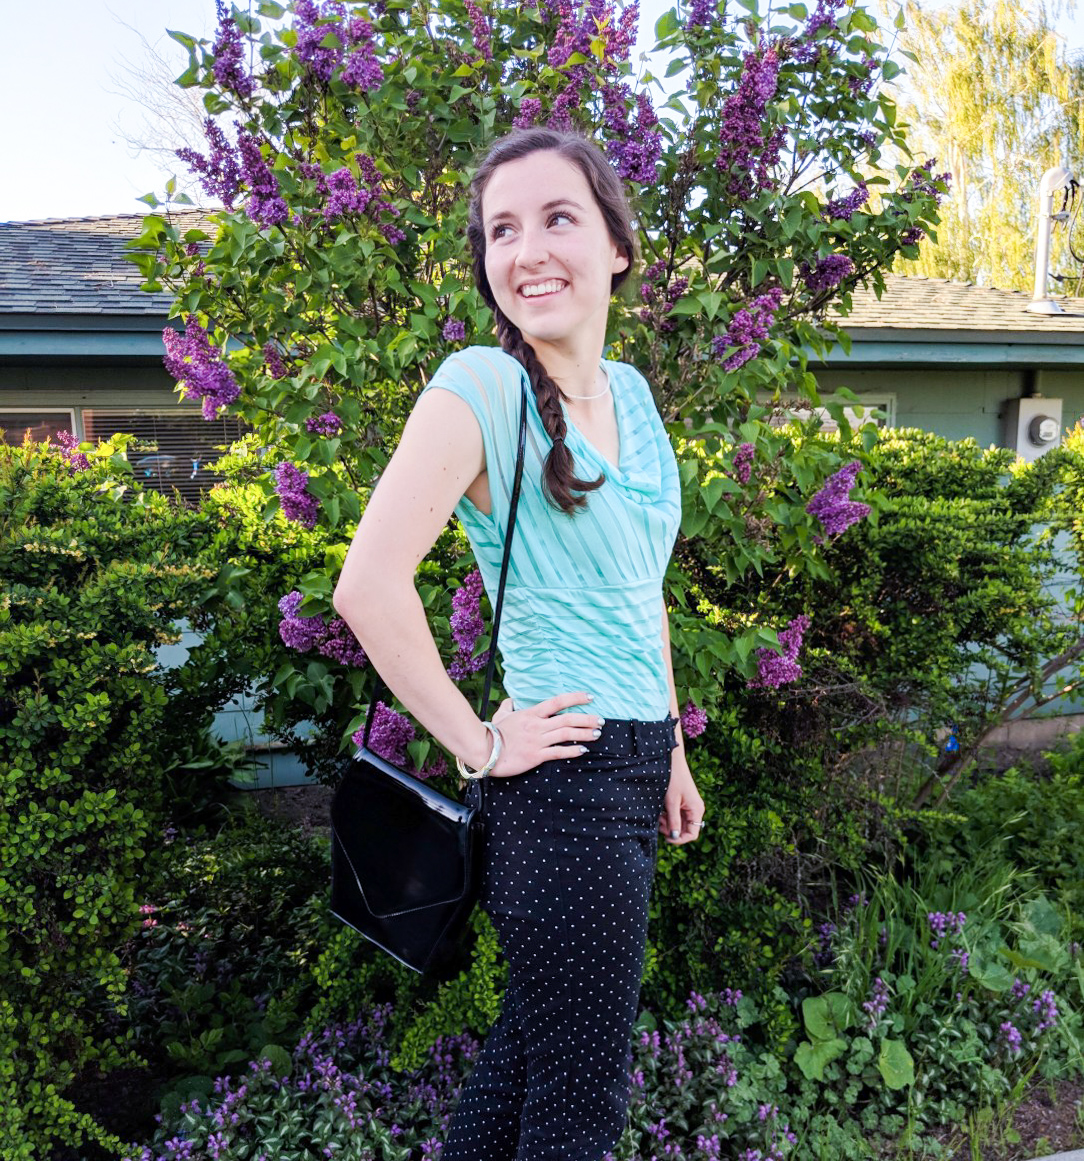 teal striped blouse, polka dot pants, braided hair, spring outfit